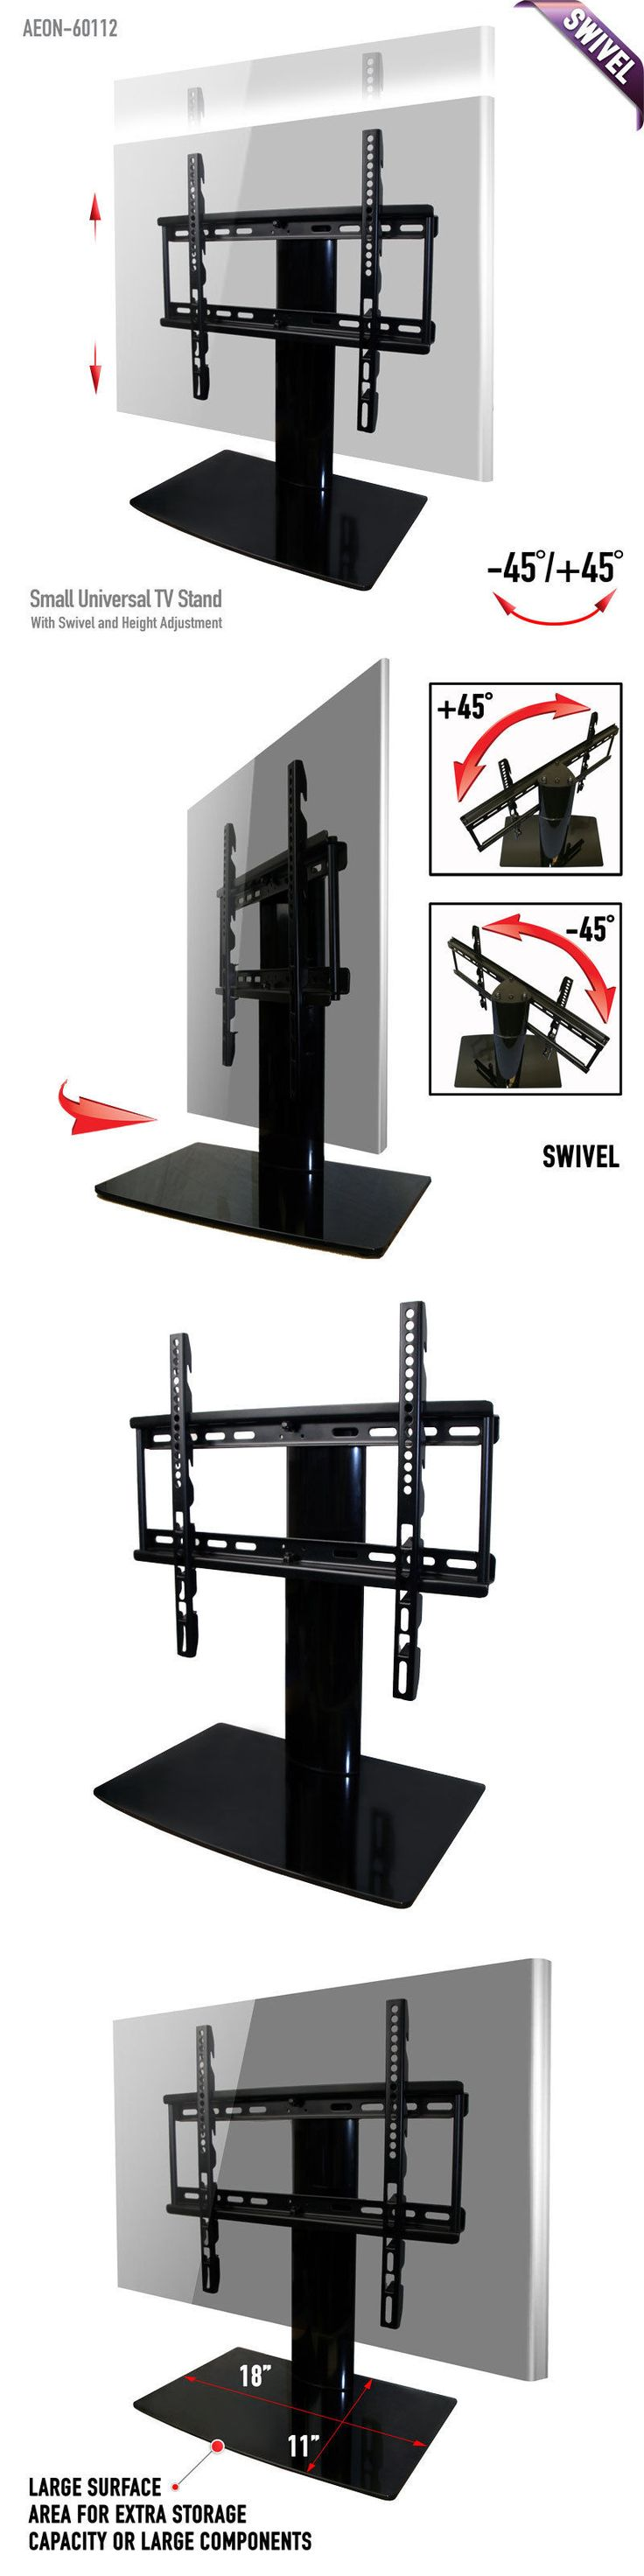 TV Mounts and Brackets: Aeon Universal Tv Stand W Swivel And For 23 32 42 46 Inch Led Lcd Tvs -> BUY IT NOW ONLY: $42.99 on eBay!